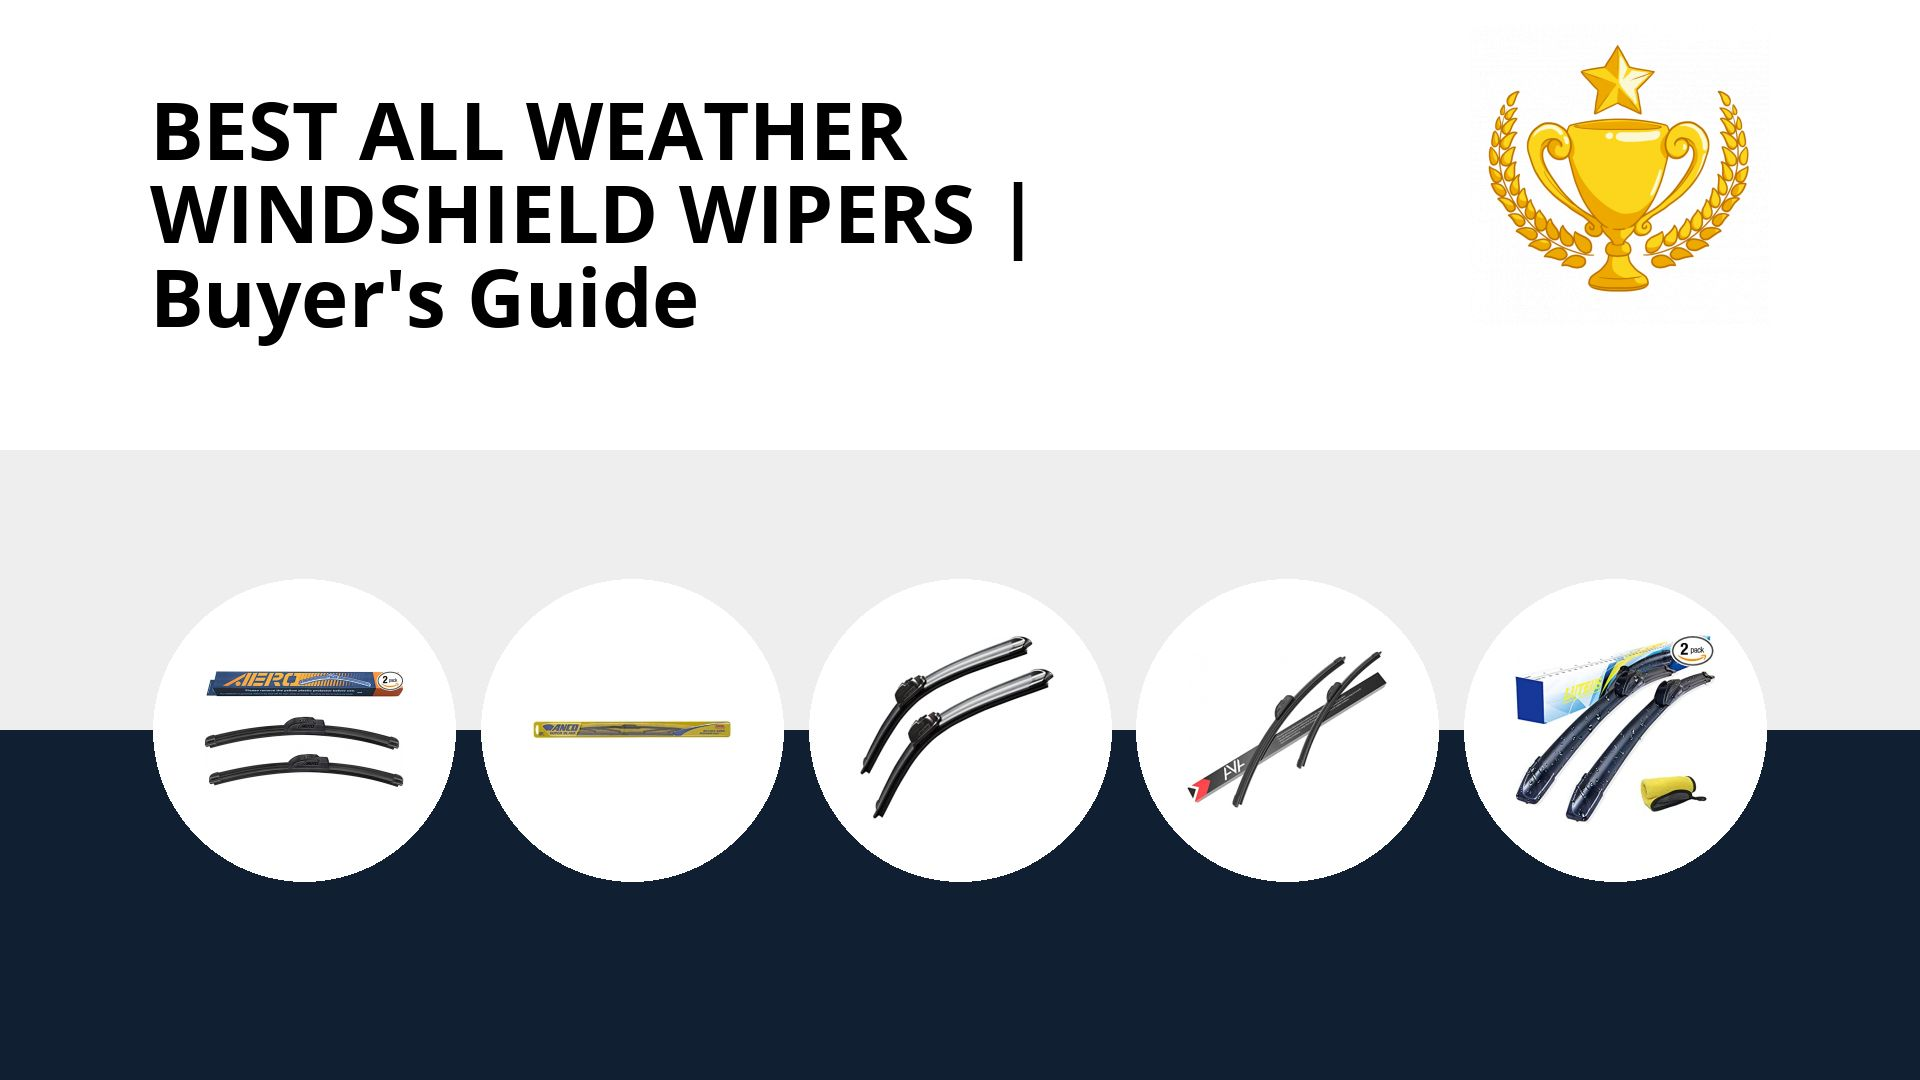 Best All Weather Windshield Wipers: image